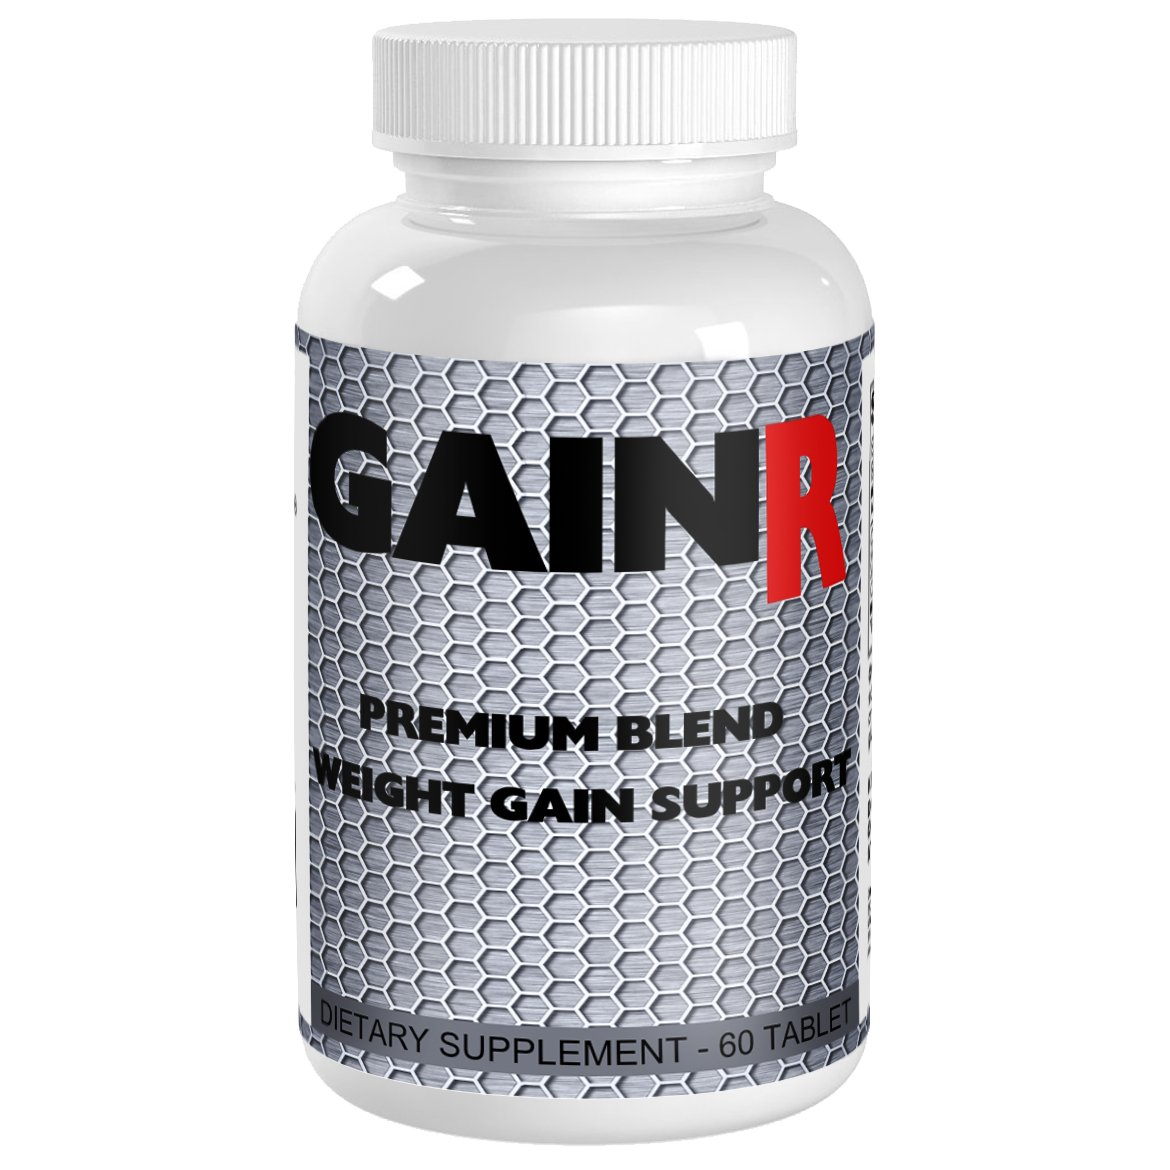 GAINR Advanced Creatine HCL Muscle Weight Gain Pills for Women and Men - Guaranteed Powerful, Proven, Extra-Potent USA Made Creatine Pills for Muscle Gain Promote Rapid Growth, Performance & Recovery